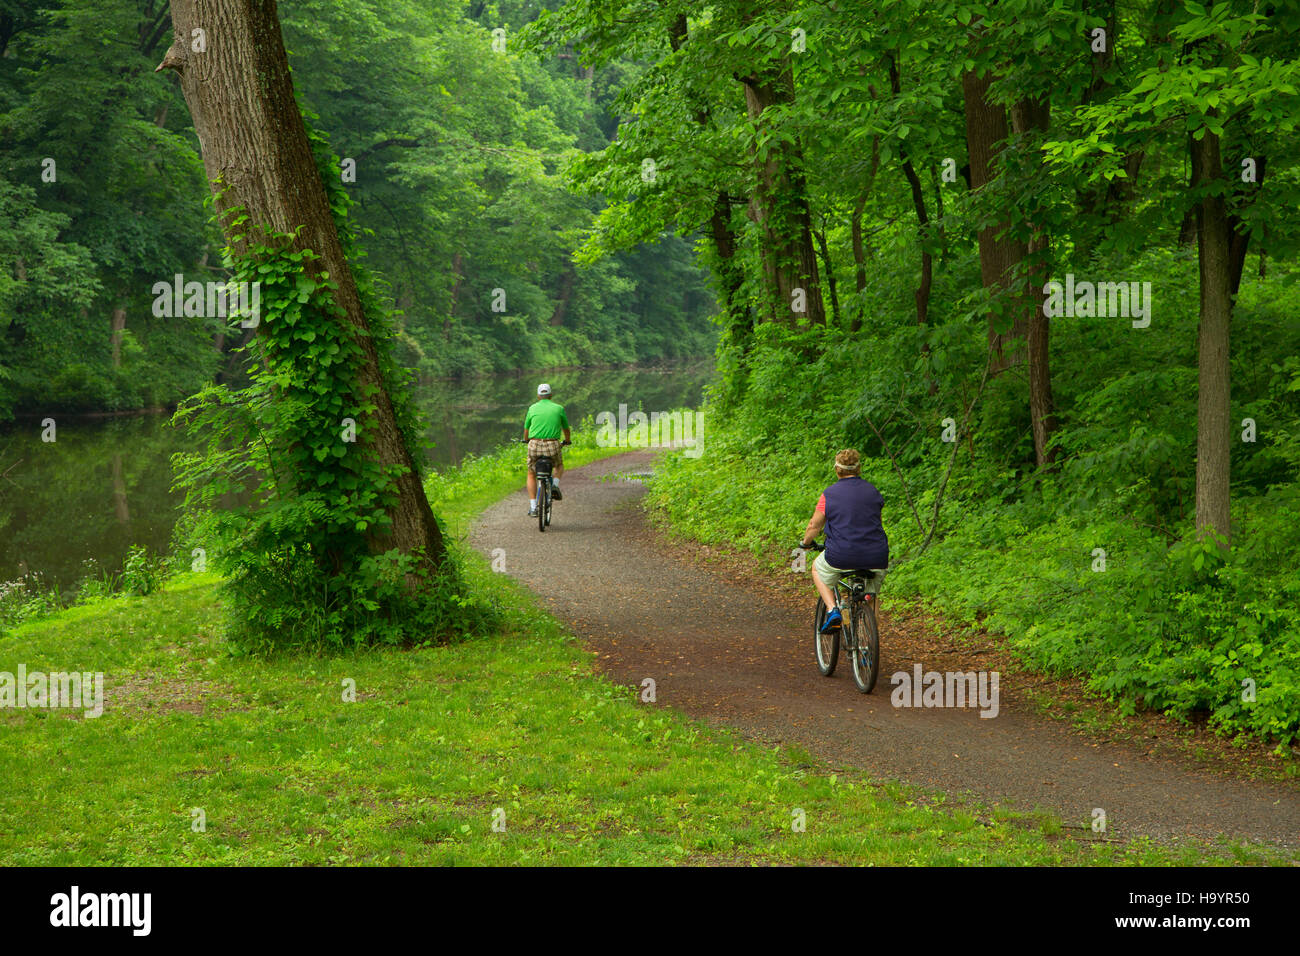 Biking on Delaware River Canal towpath, Delaware River Canal State Park, Washington Crossing Historic Park, Pennsylvania - Stock Image